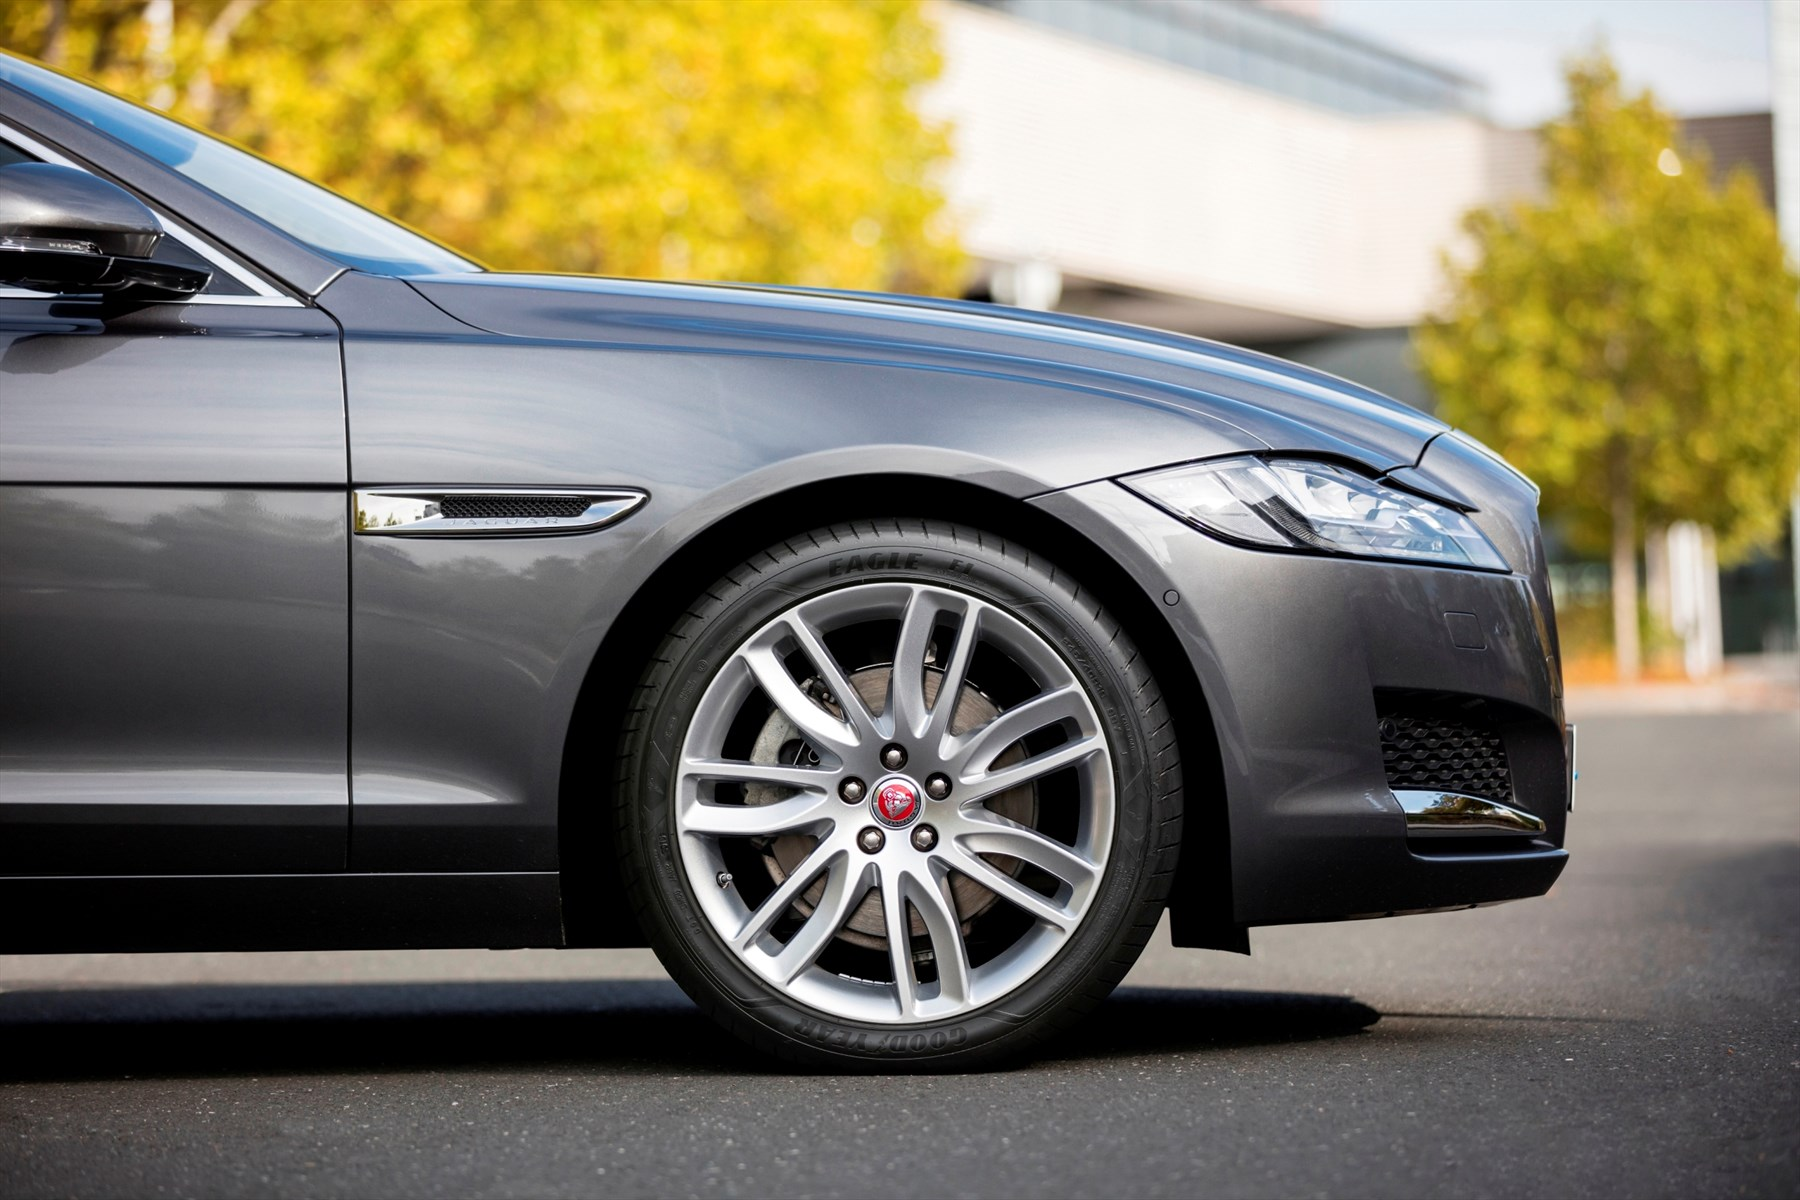 Goodyear Eagle F1 Asymmetric 3 Appears On Jaguar Xf